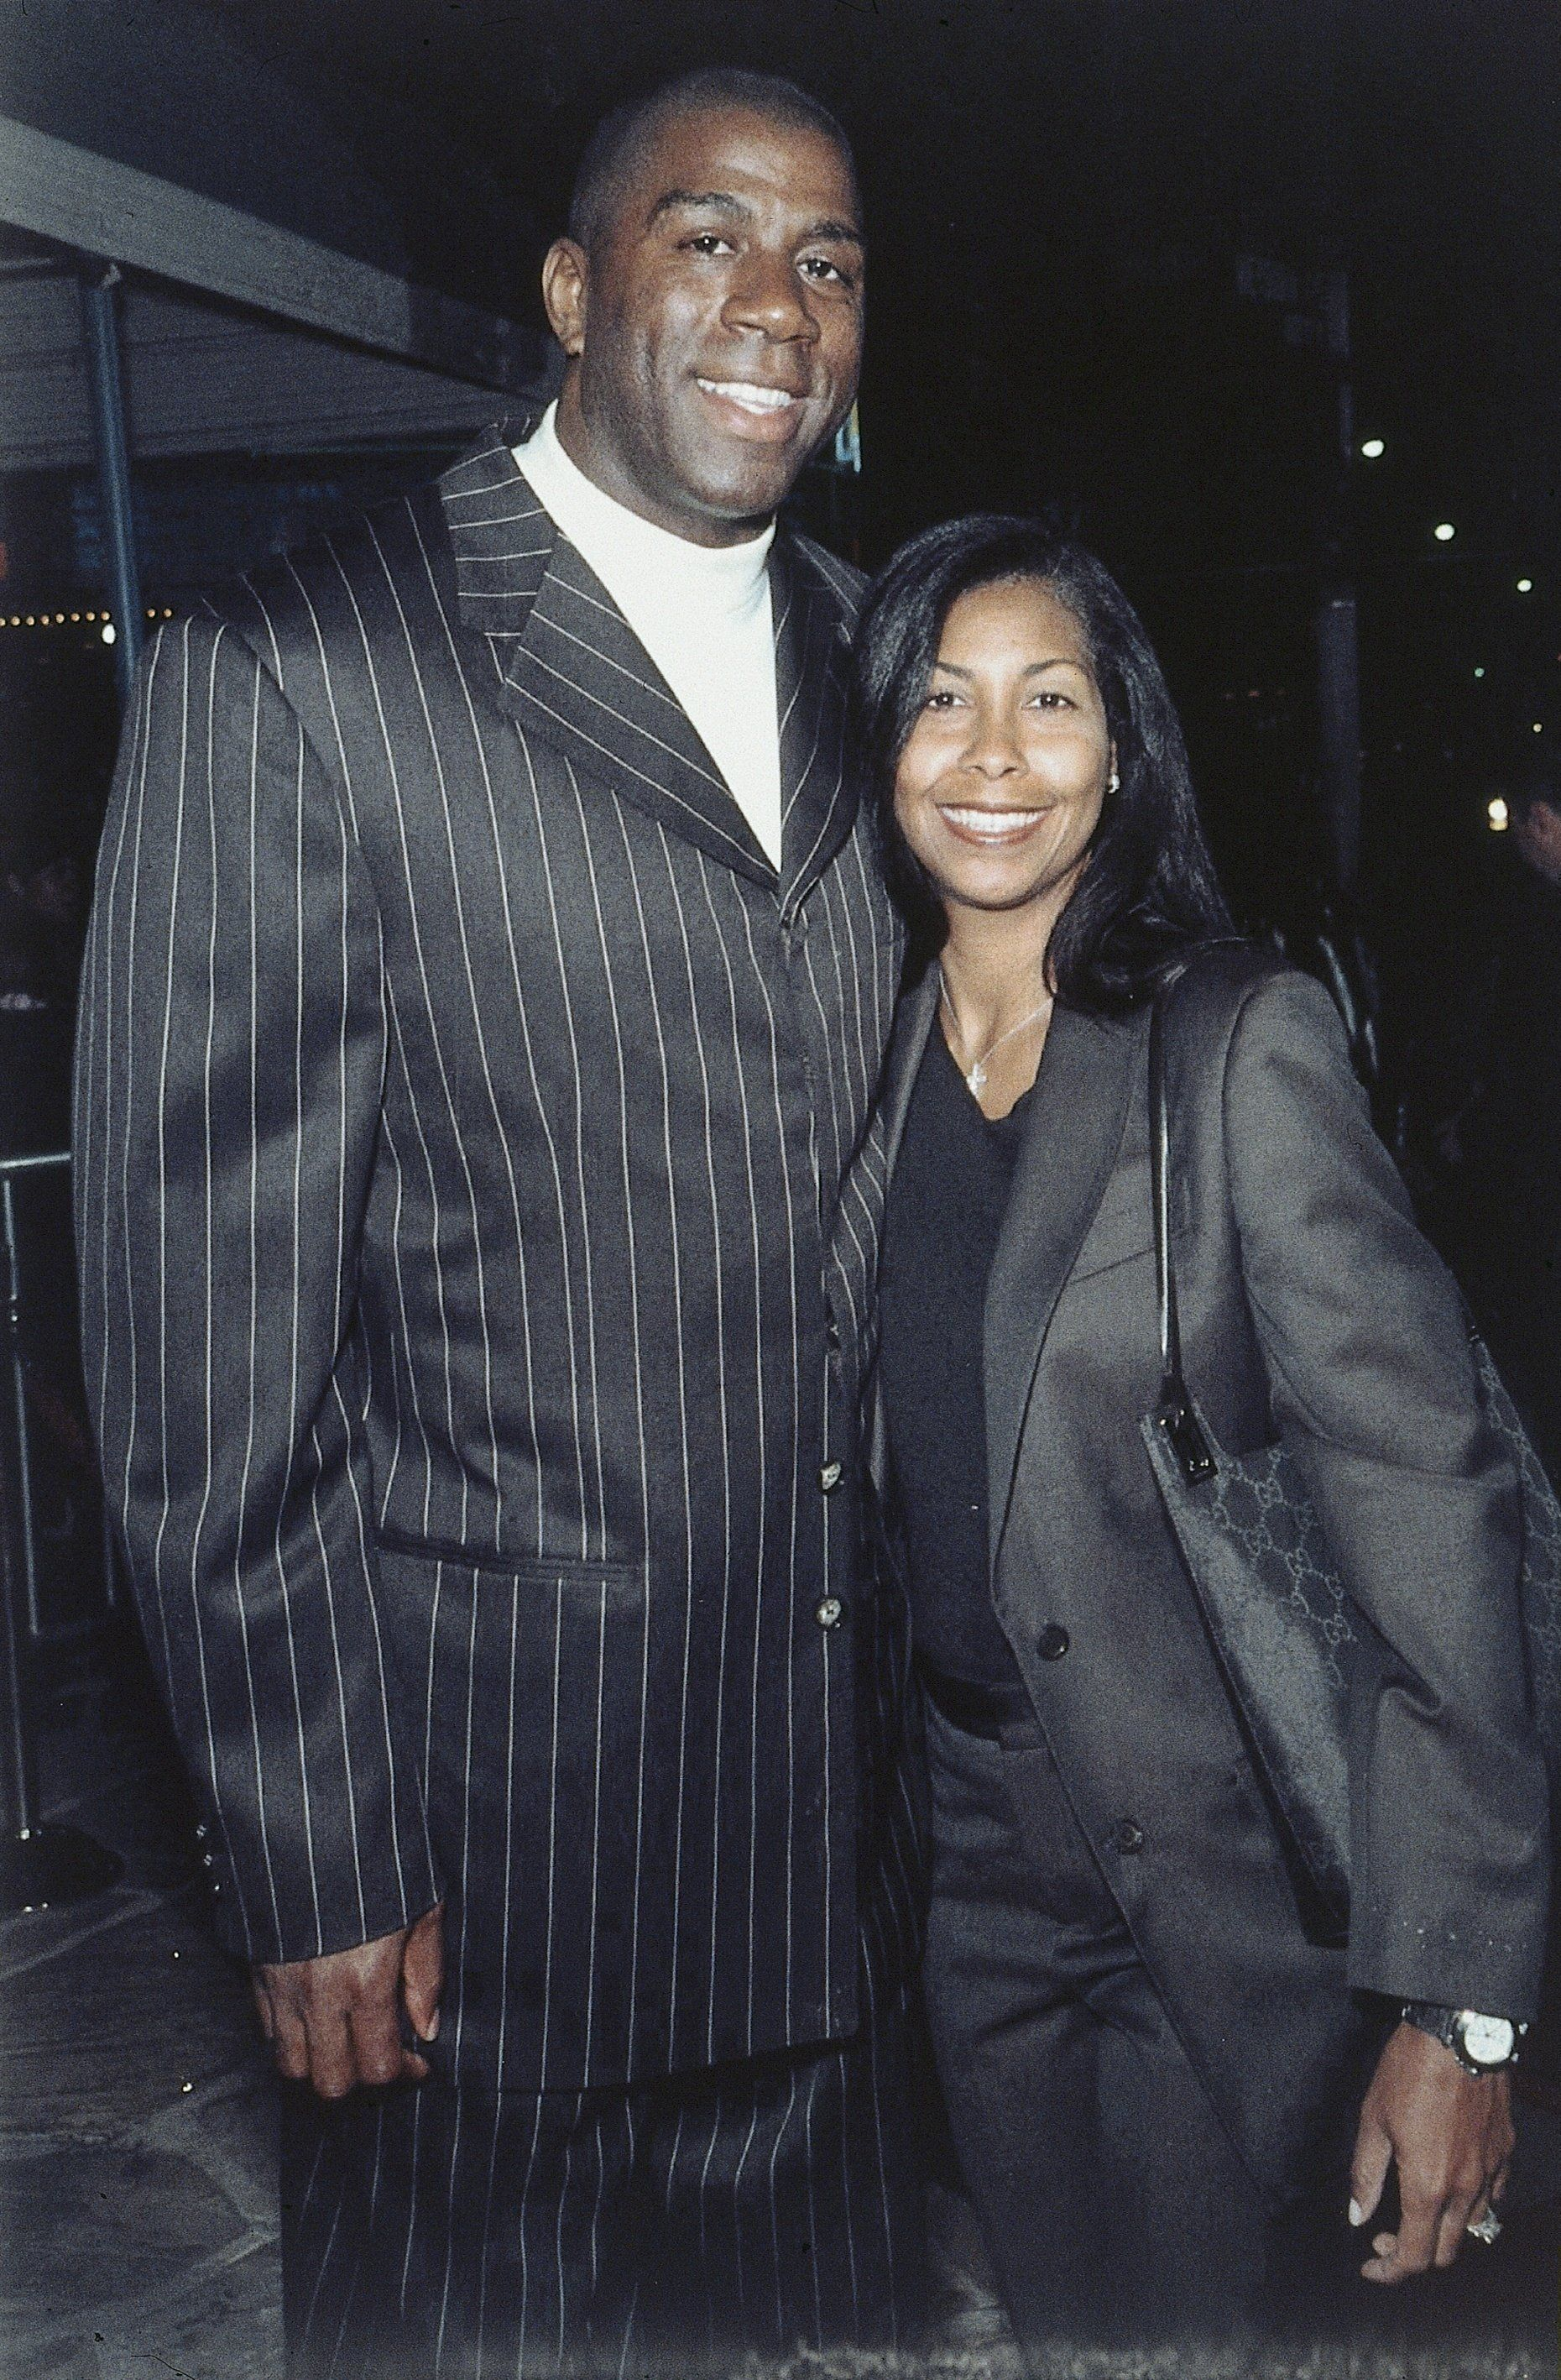 (GERMANY OUT) Earvin 'Magic' Johnson, früherer US-Profibasketballer, und seine Frau Earletha 'Cookie' Johnson, geb. Kelly. Magic Johnson trägt einen schwarzen Anzug, Cookie Johnson einen schwarzen Hosenanzug. Aufgenommen 1999. (Photo by Siemoneit/ullstein bild via Getty Images)